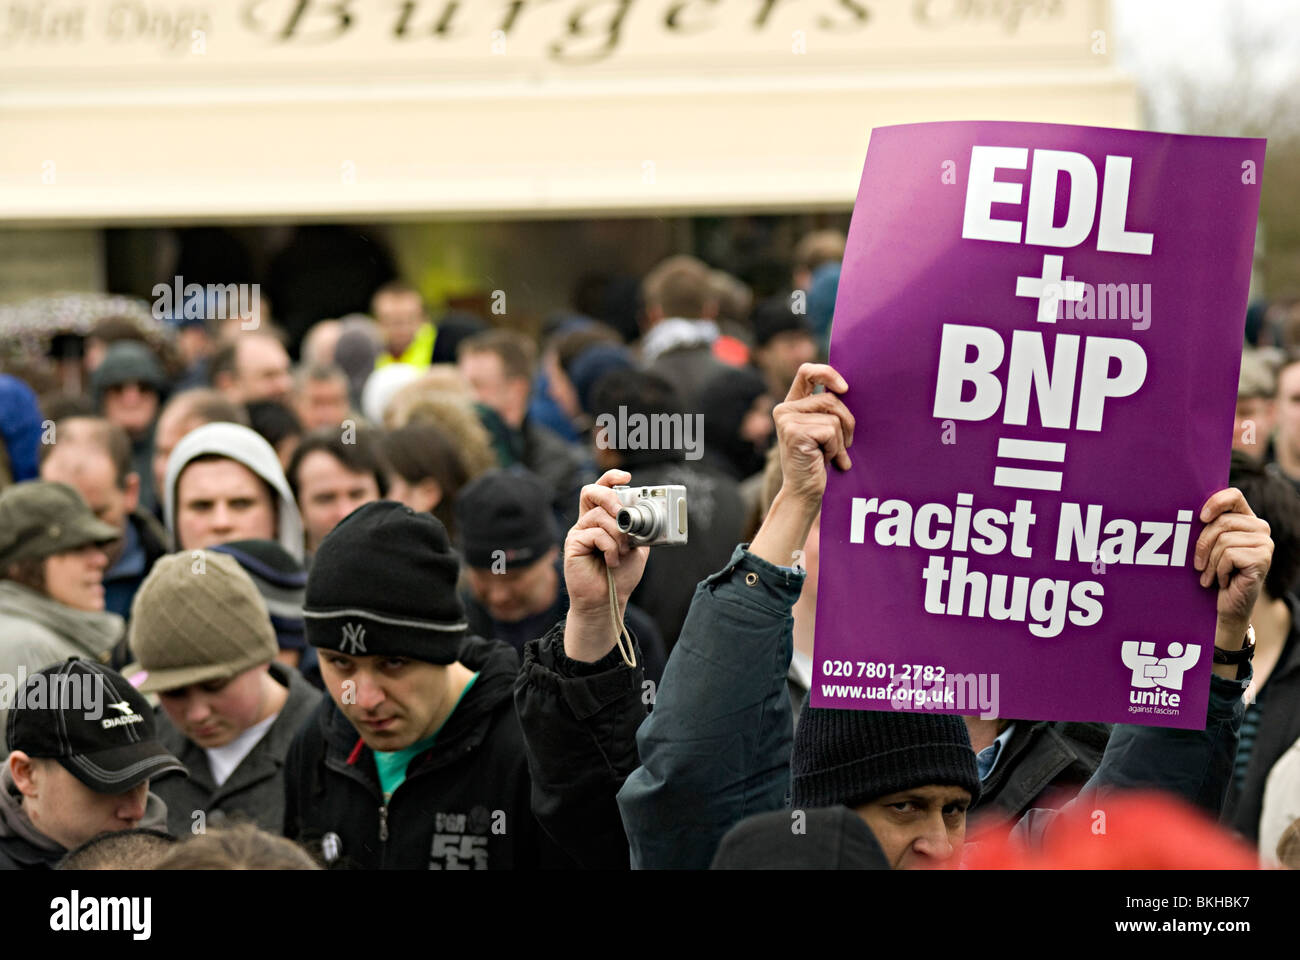 unite against fascism counter protest against the edl in dudley april 2010 - Stock Image